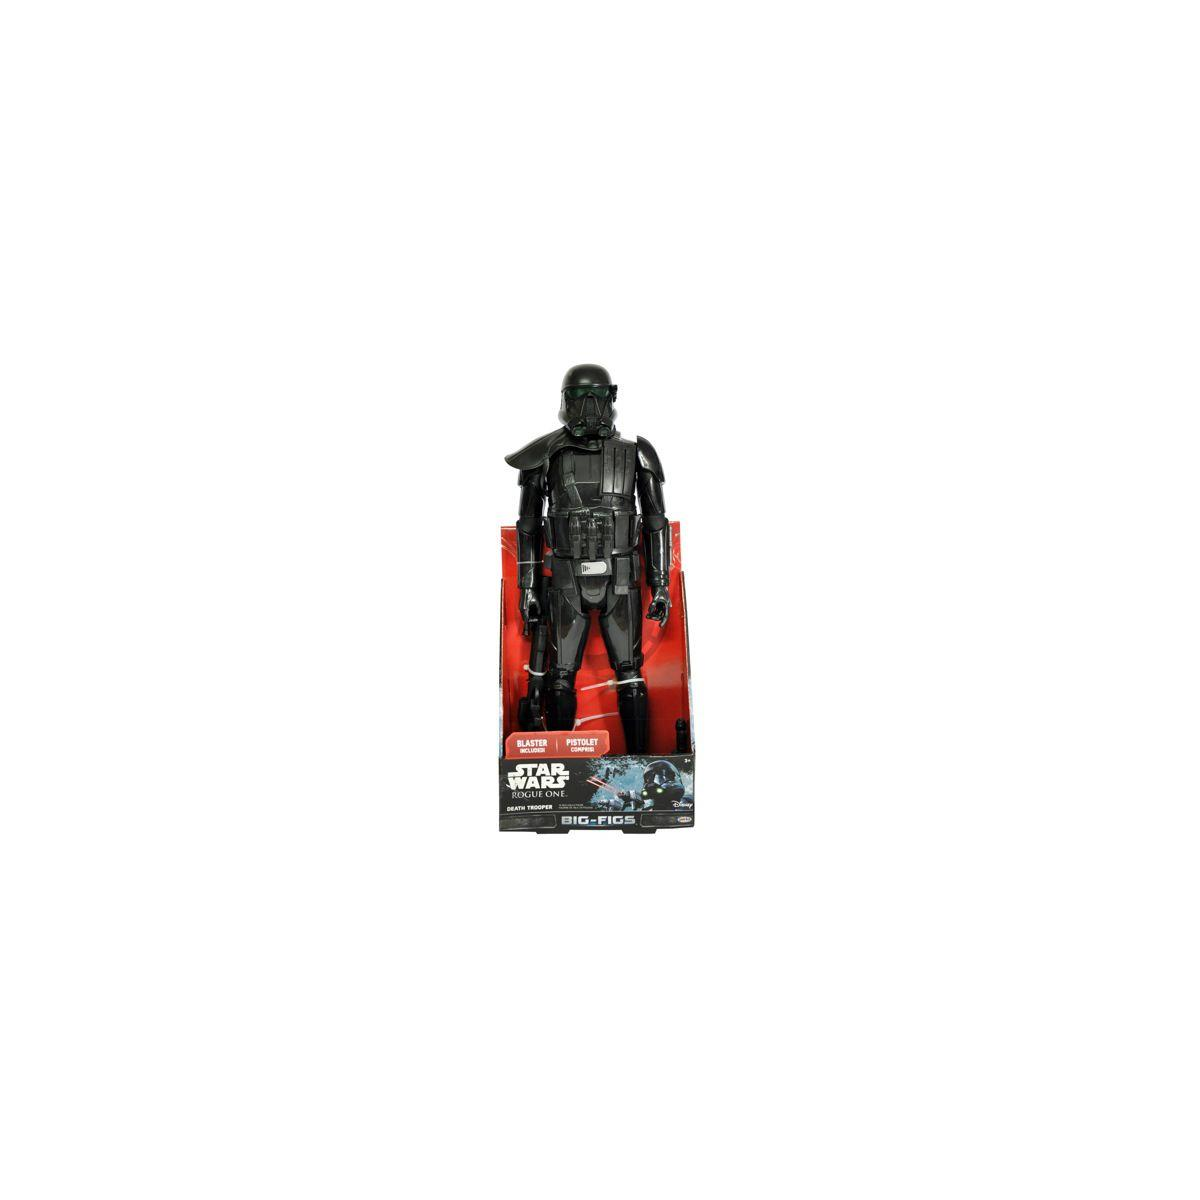 Figurine polymark shark trooper (photo)